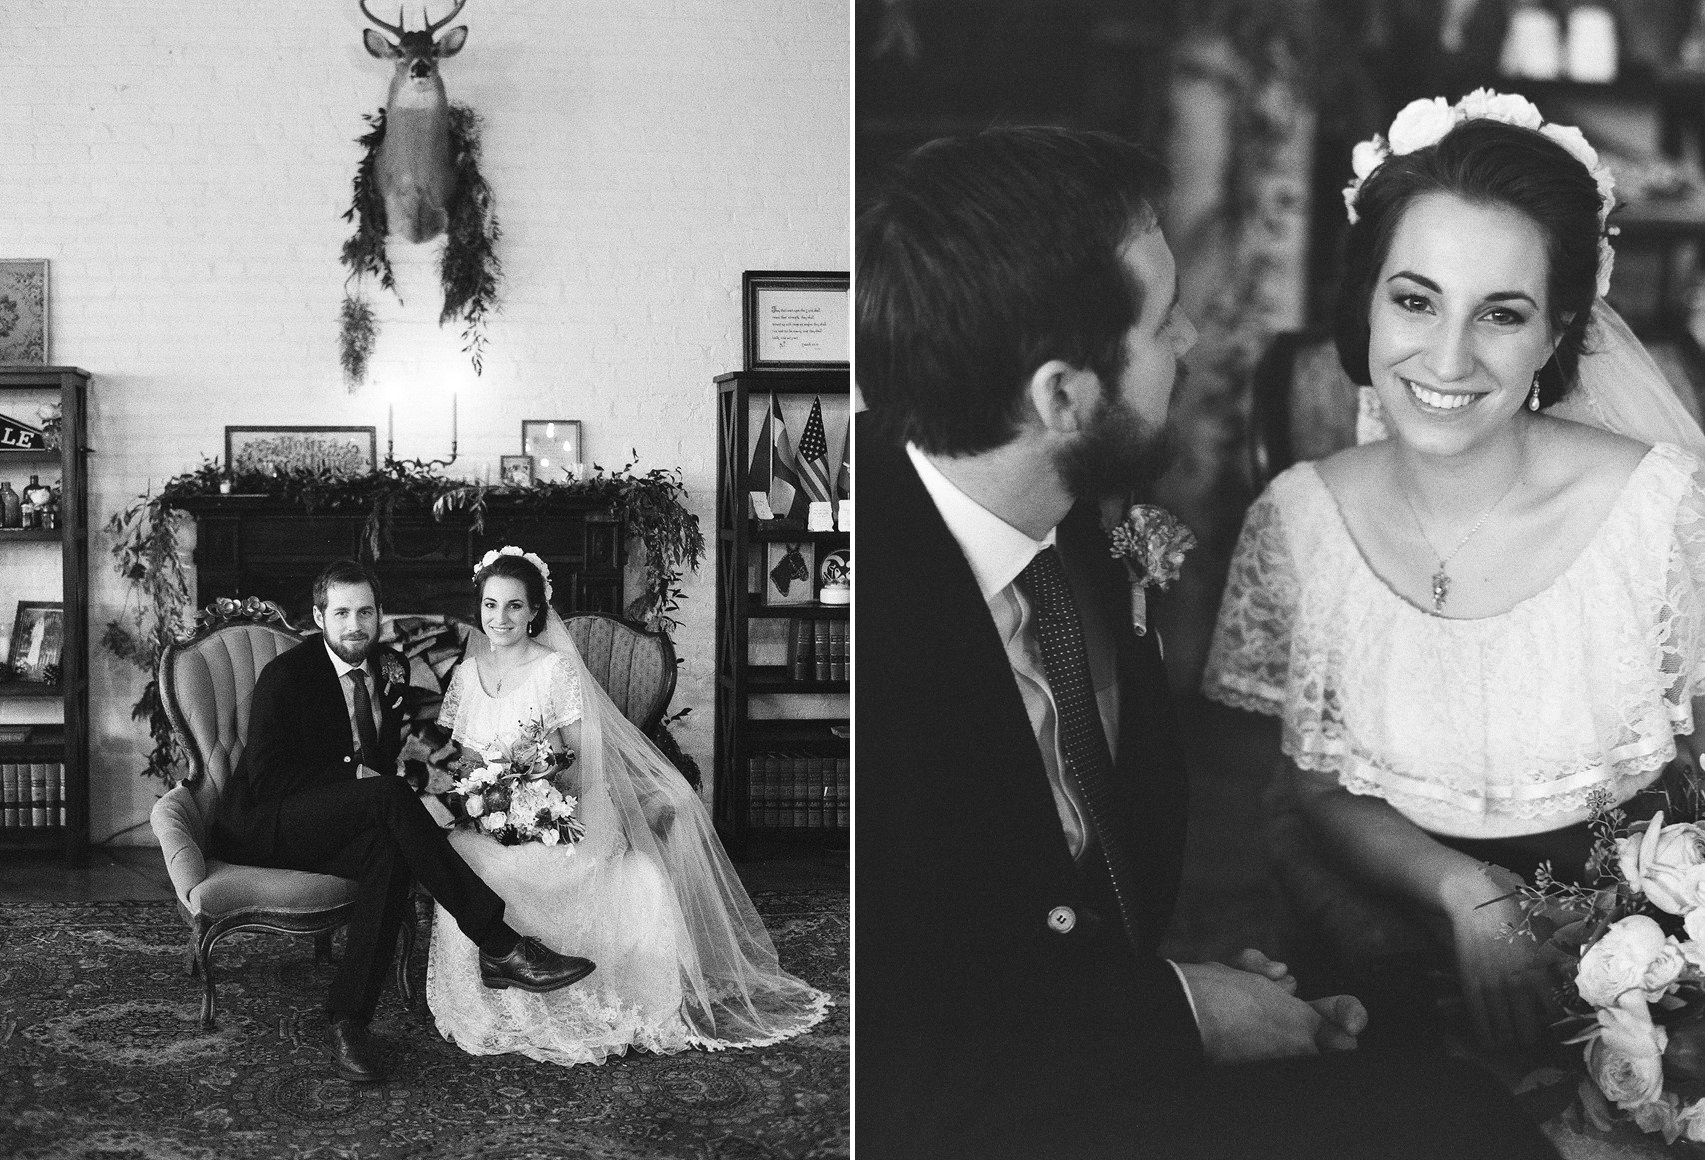 Vintage Bride & Groom Portraits // Photography ~ Whitney Neal